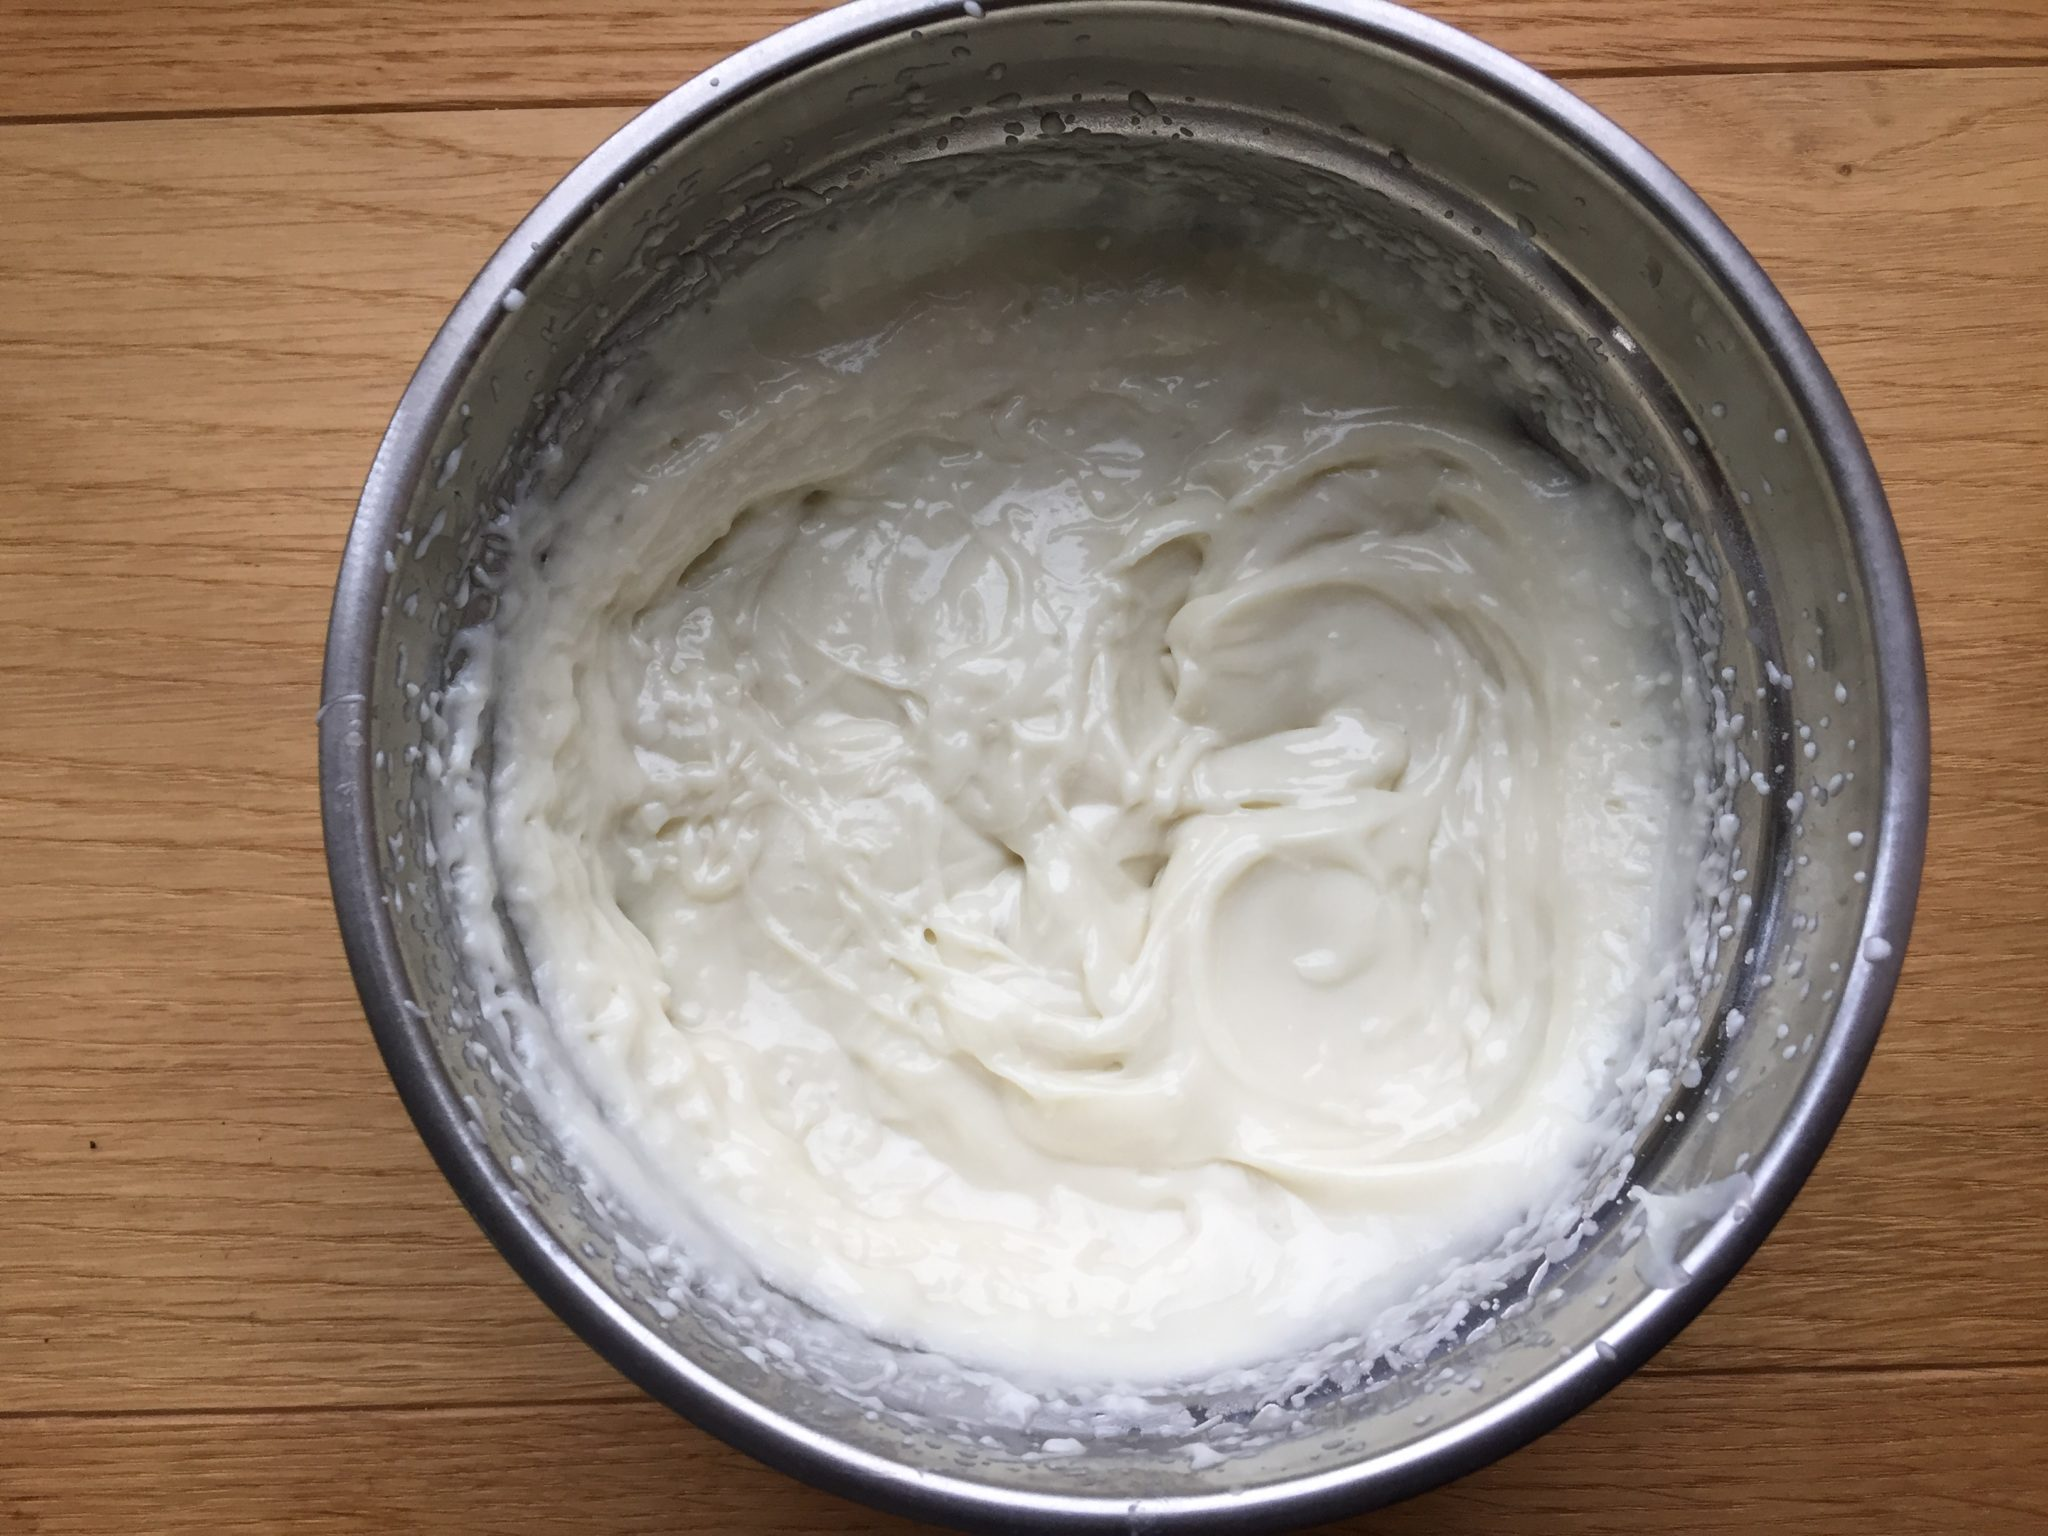 Bodybutter nach dem Mixen